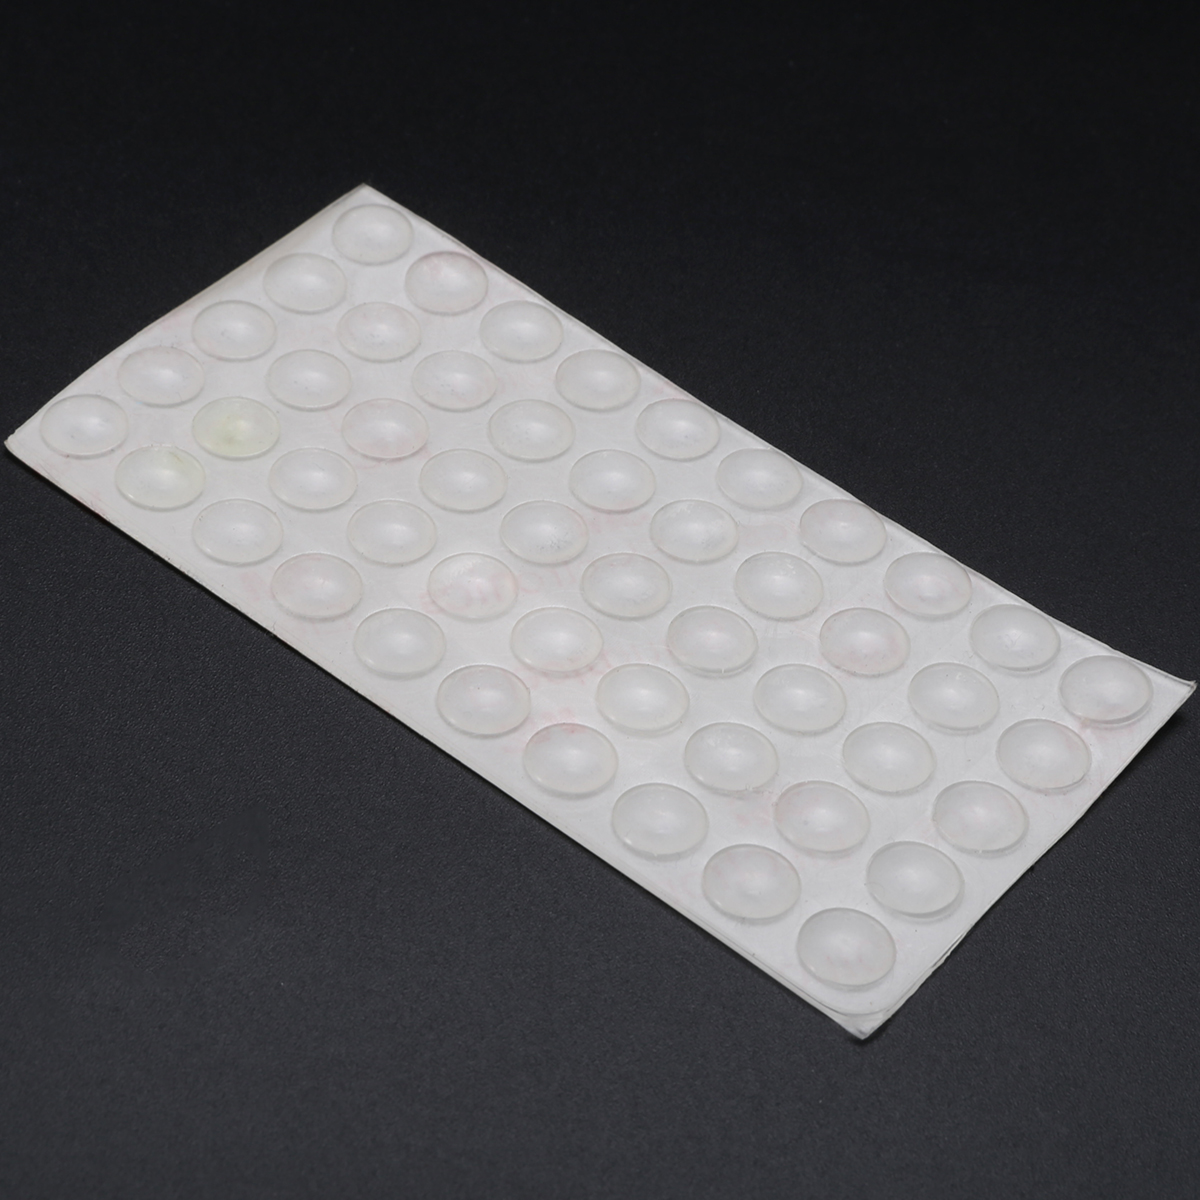 50pcs Self Adhesive Rubber Feet Pads Silicone Transparent Cupboard ...